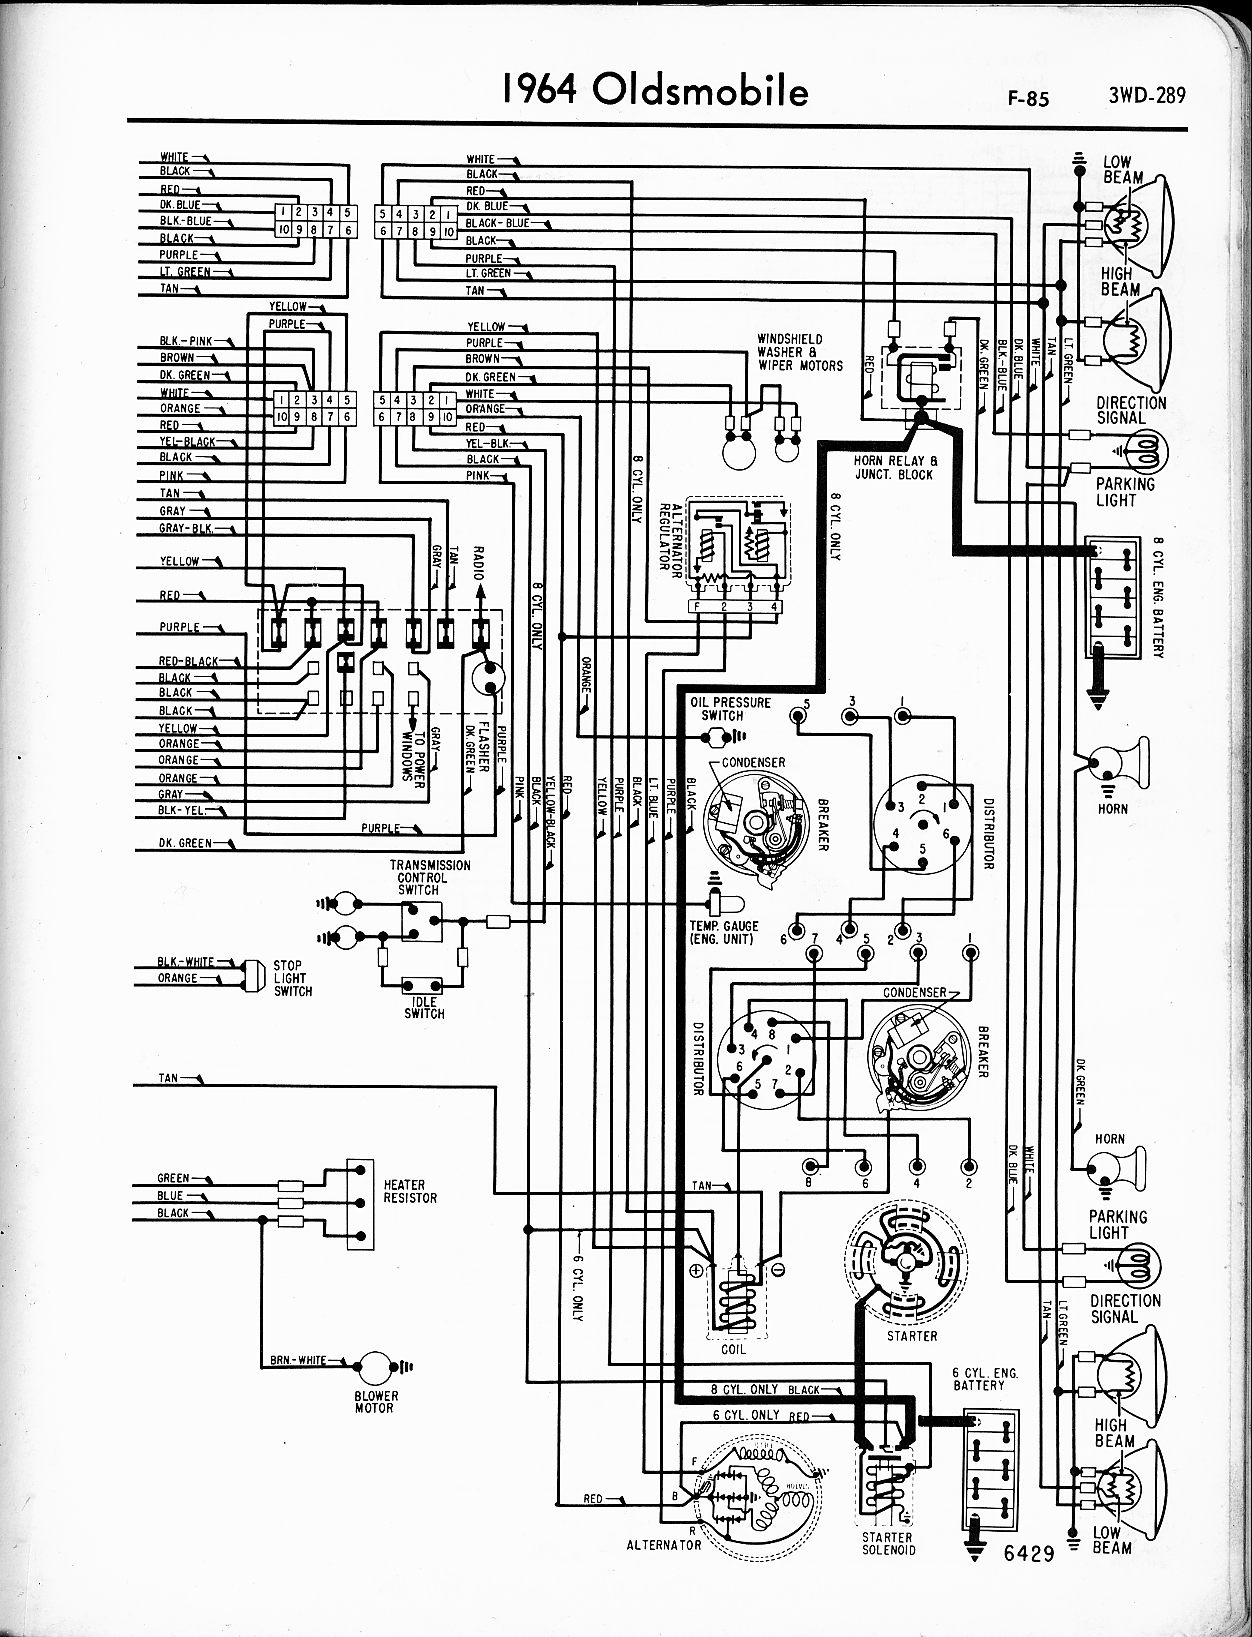 MWire5765 289 oldsmobile wiring diagrams oldsmobile wiring diagrams instruction Wiring Schematics for Johnson Outboards at reclaimingppi.co